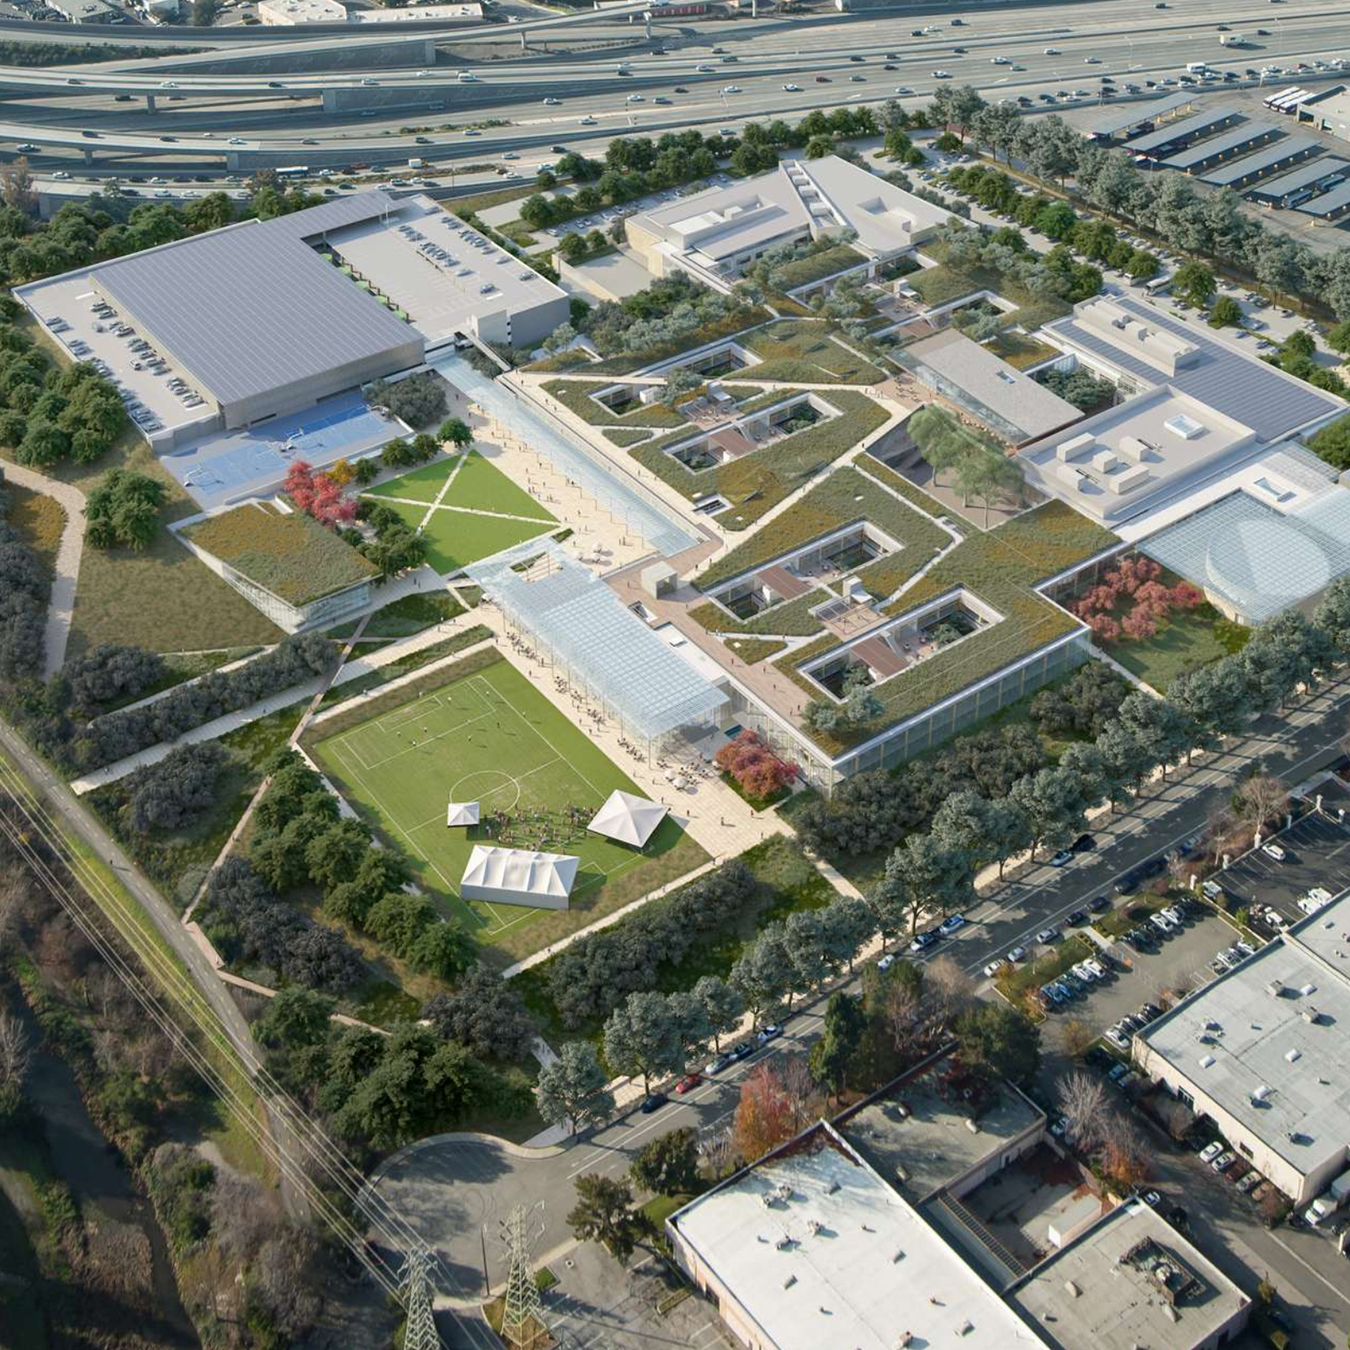 Aerial Rendering of Corporate Campus with largest CLT building in North America